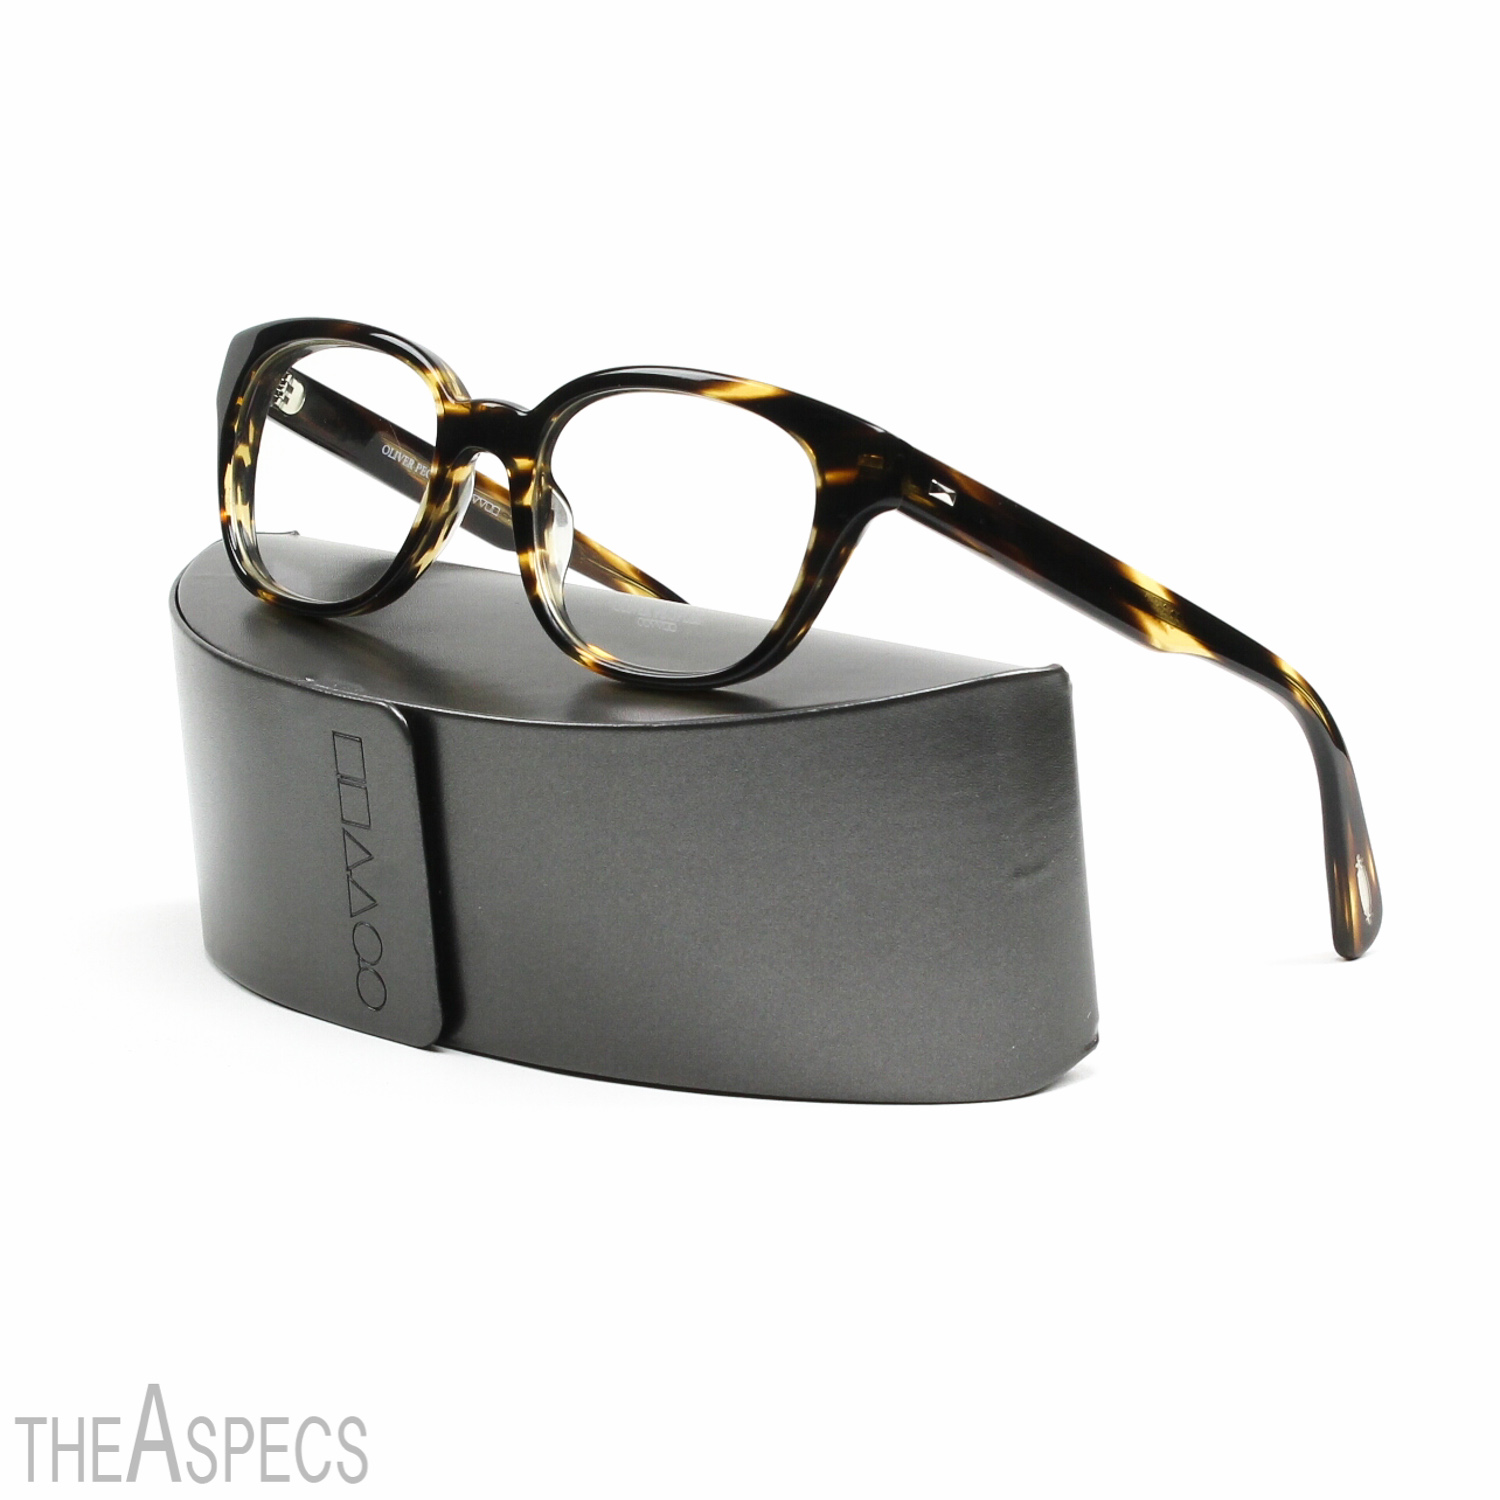 Eyeglass Frames With Interchangeable Lenses : Oliver Peoples Michaela Eyeglasses 1003 Cocobolo Brown ...